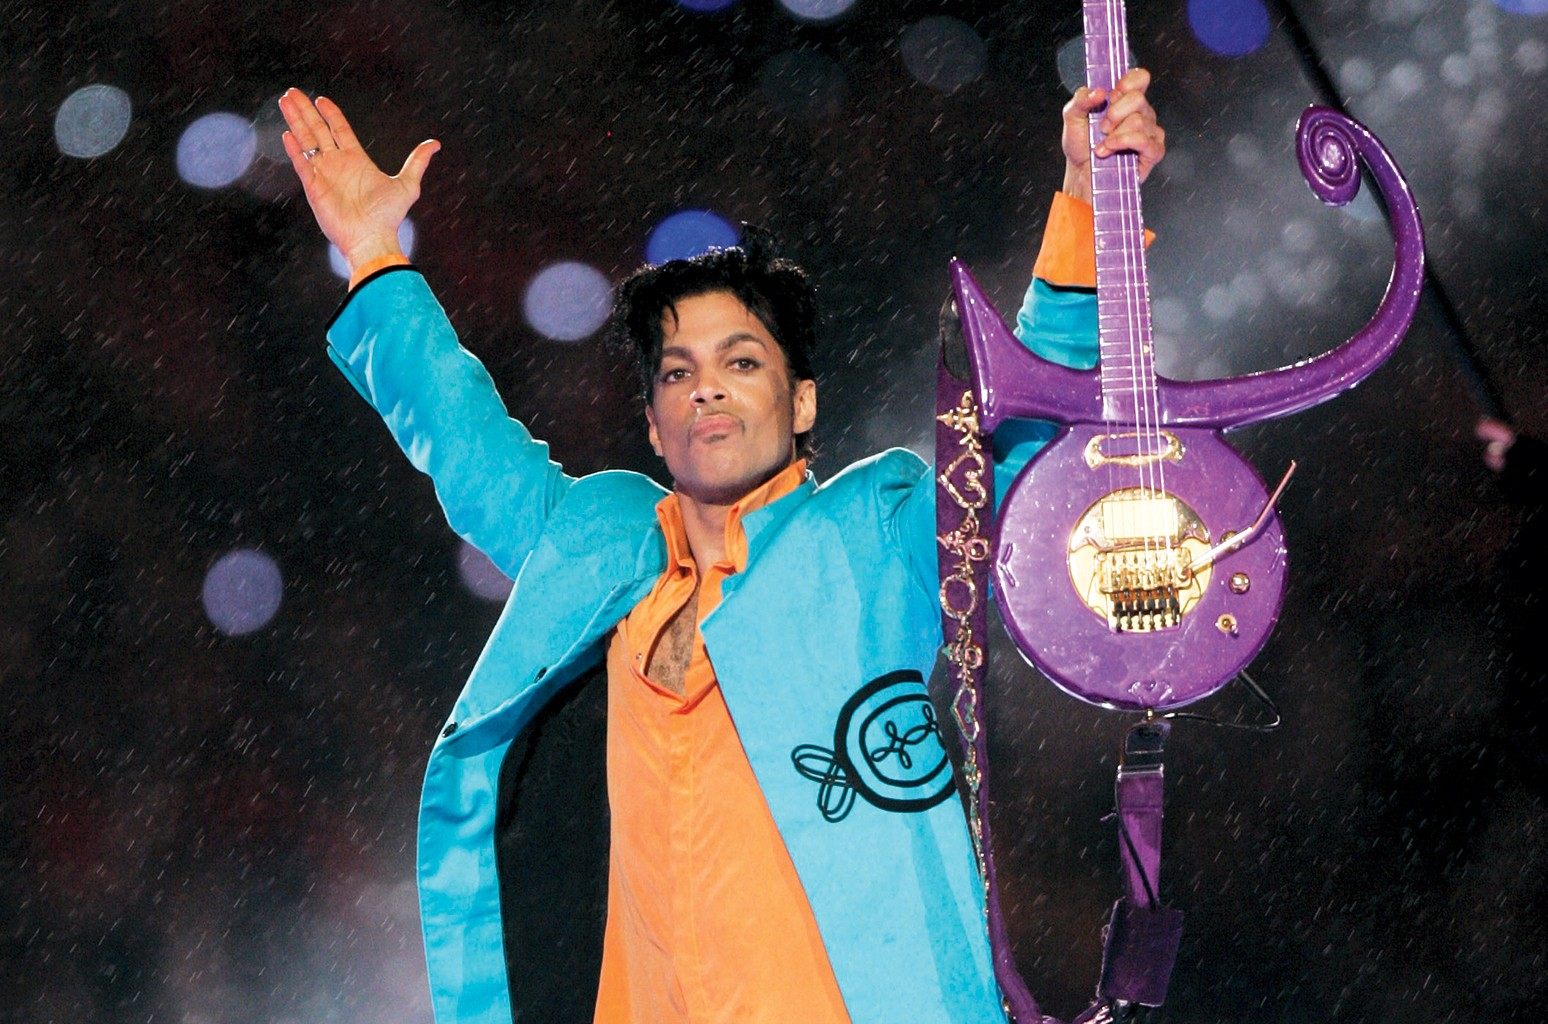 Prince performs during the halftime show at the Super Bowl XLI football game at Dolphin Stadium in Miami on Feb. 4, 2007.